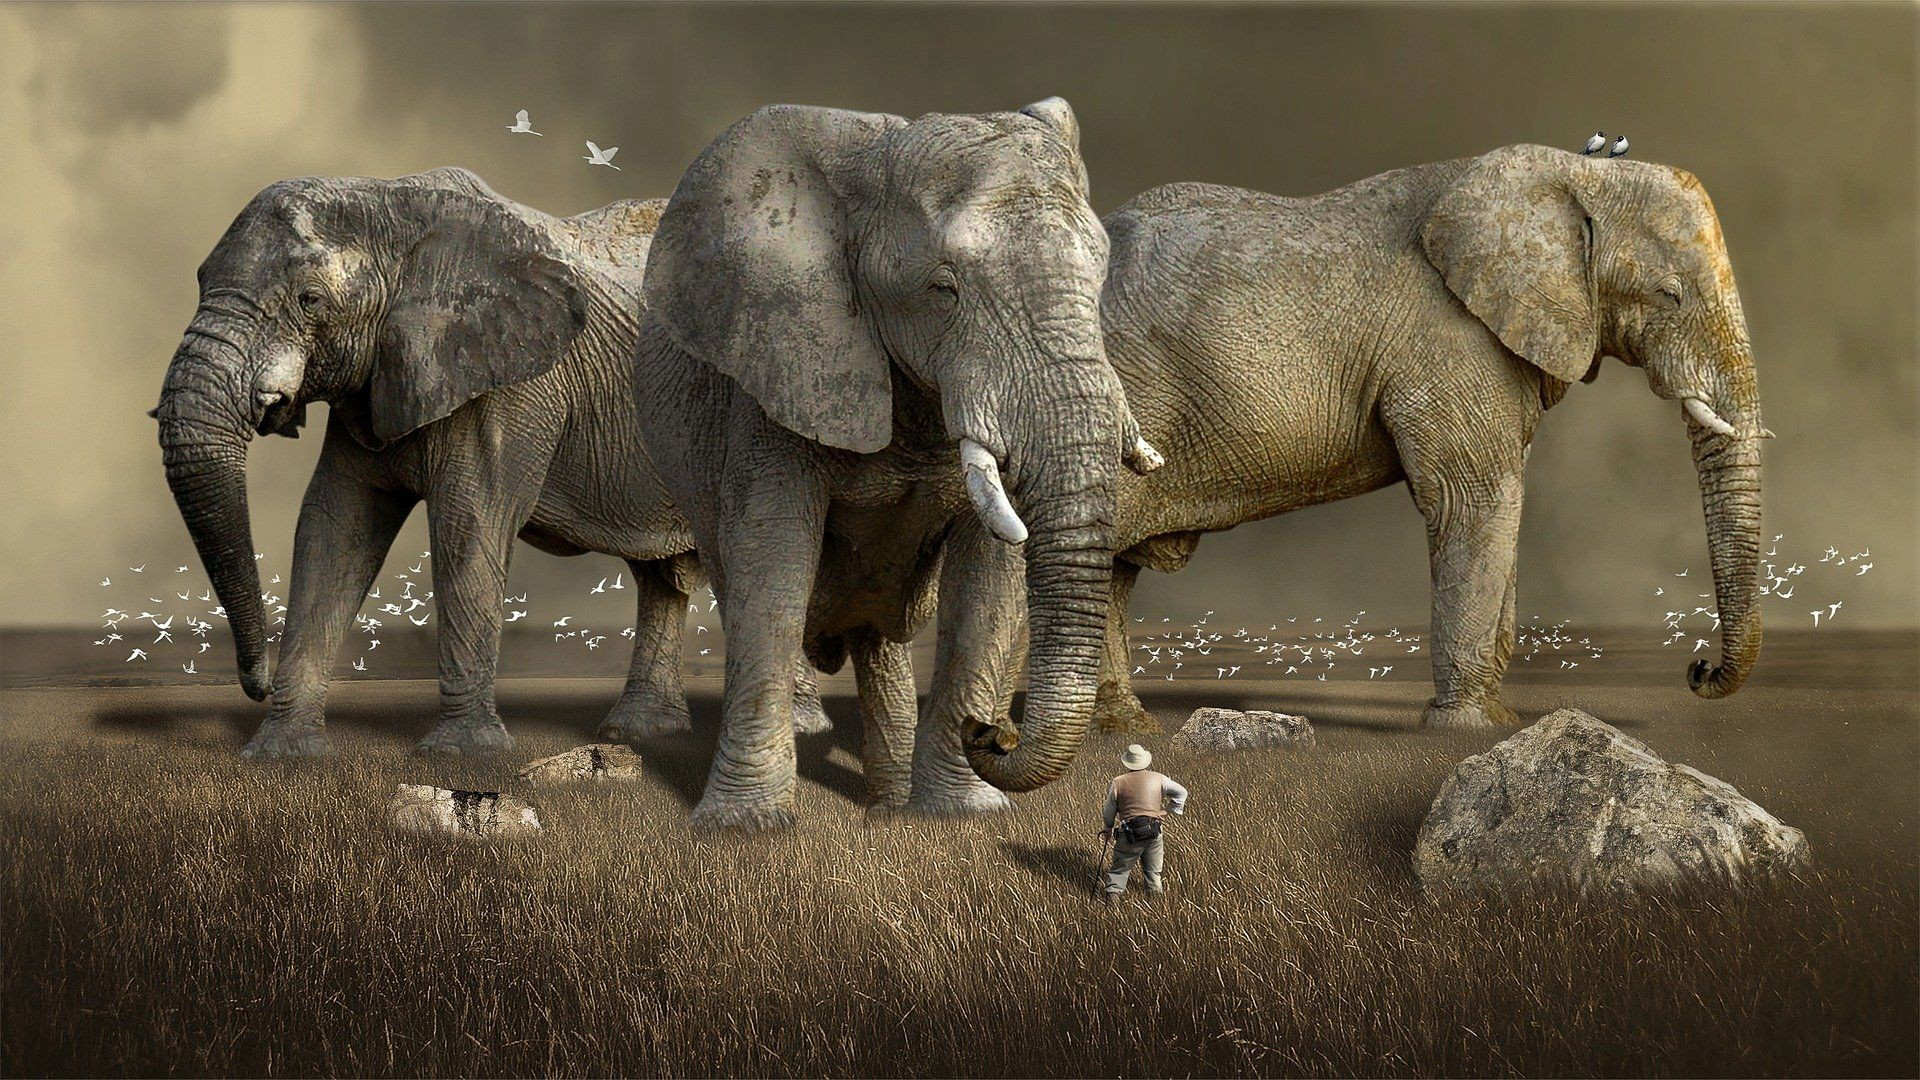 A small man in a field facing three giant elephants serving as symbols of a dream.